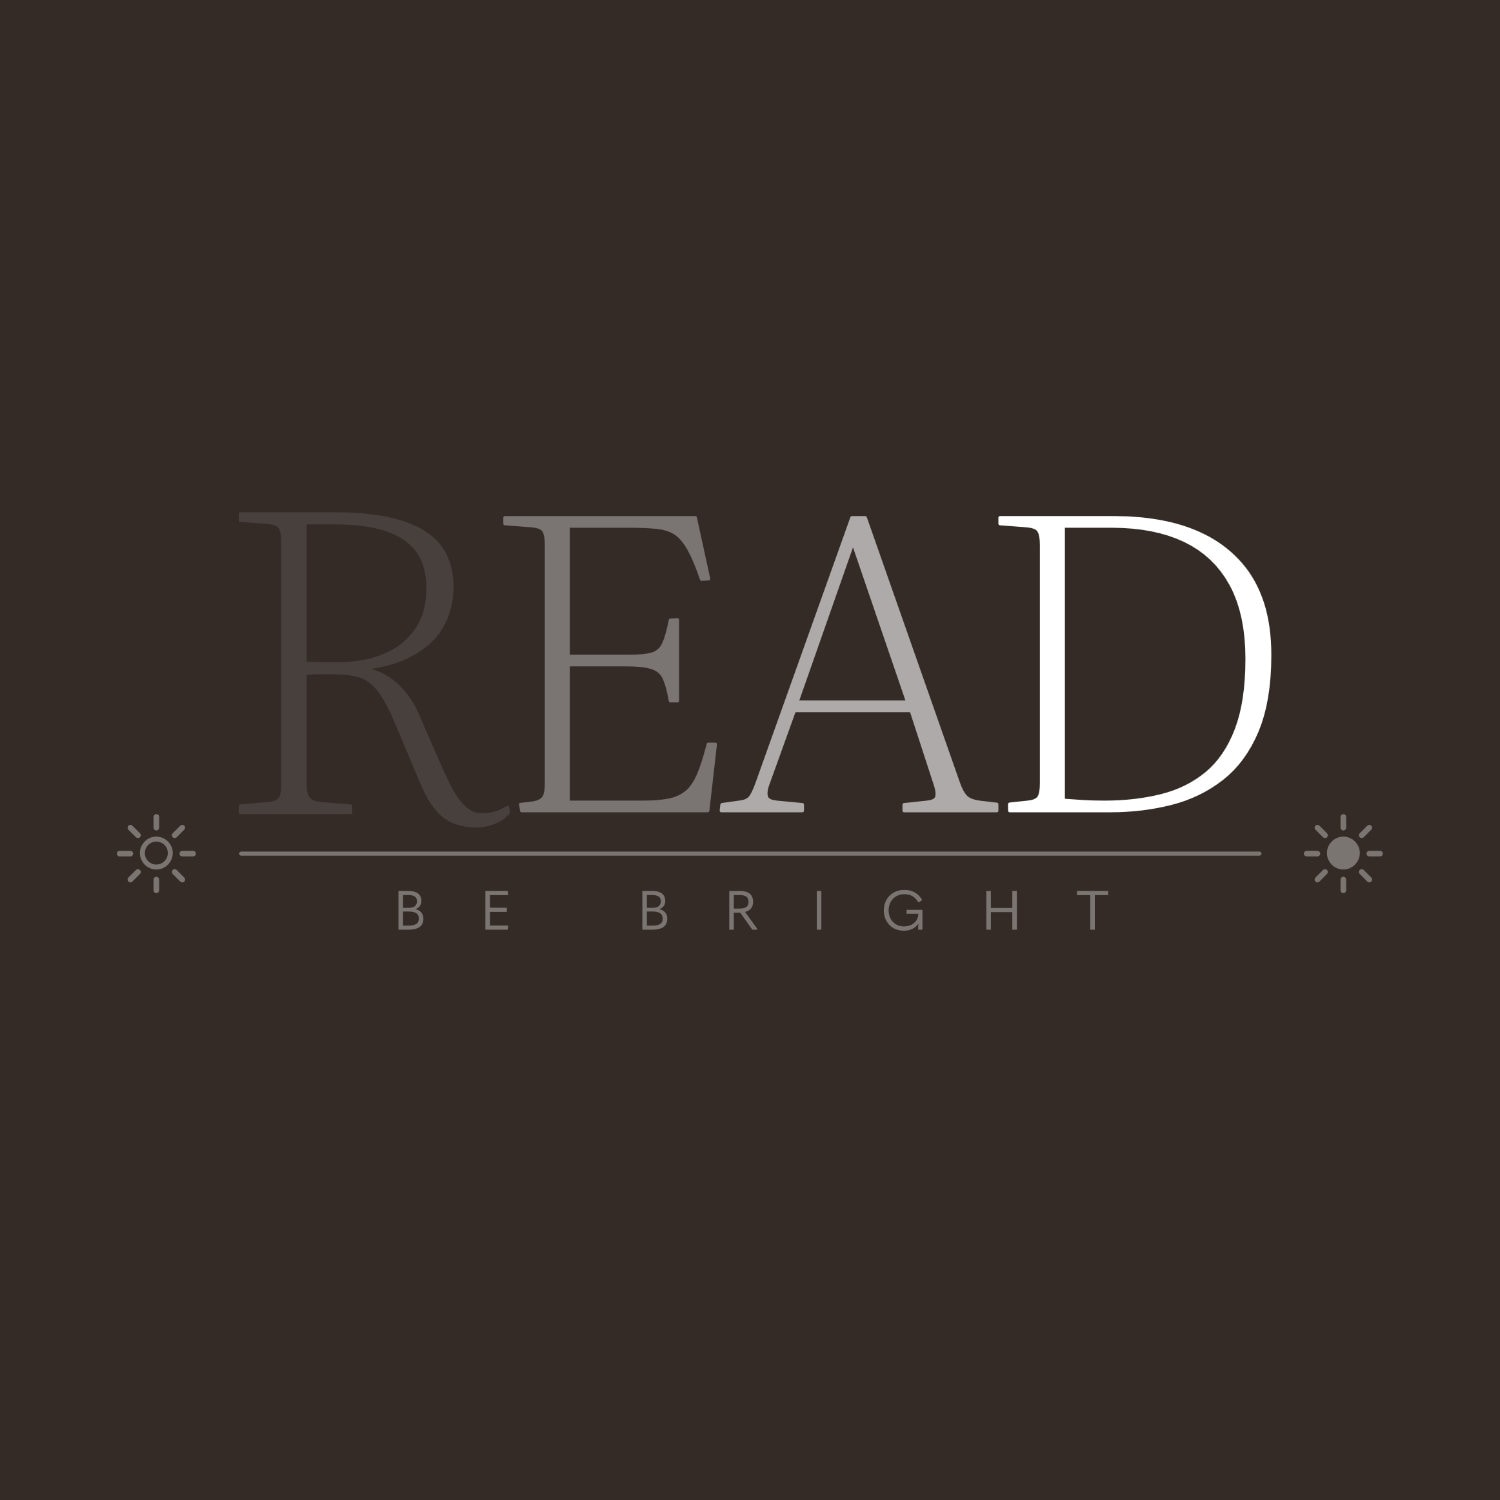 Read Be Bright - bookish images ideas by Piotr Kowalczyk